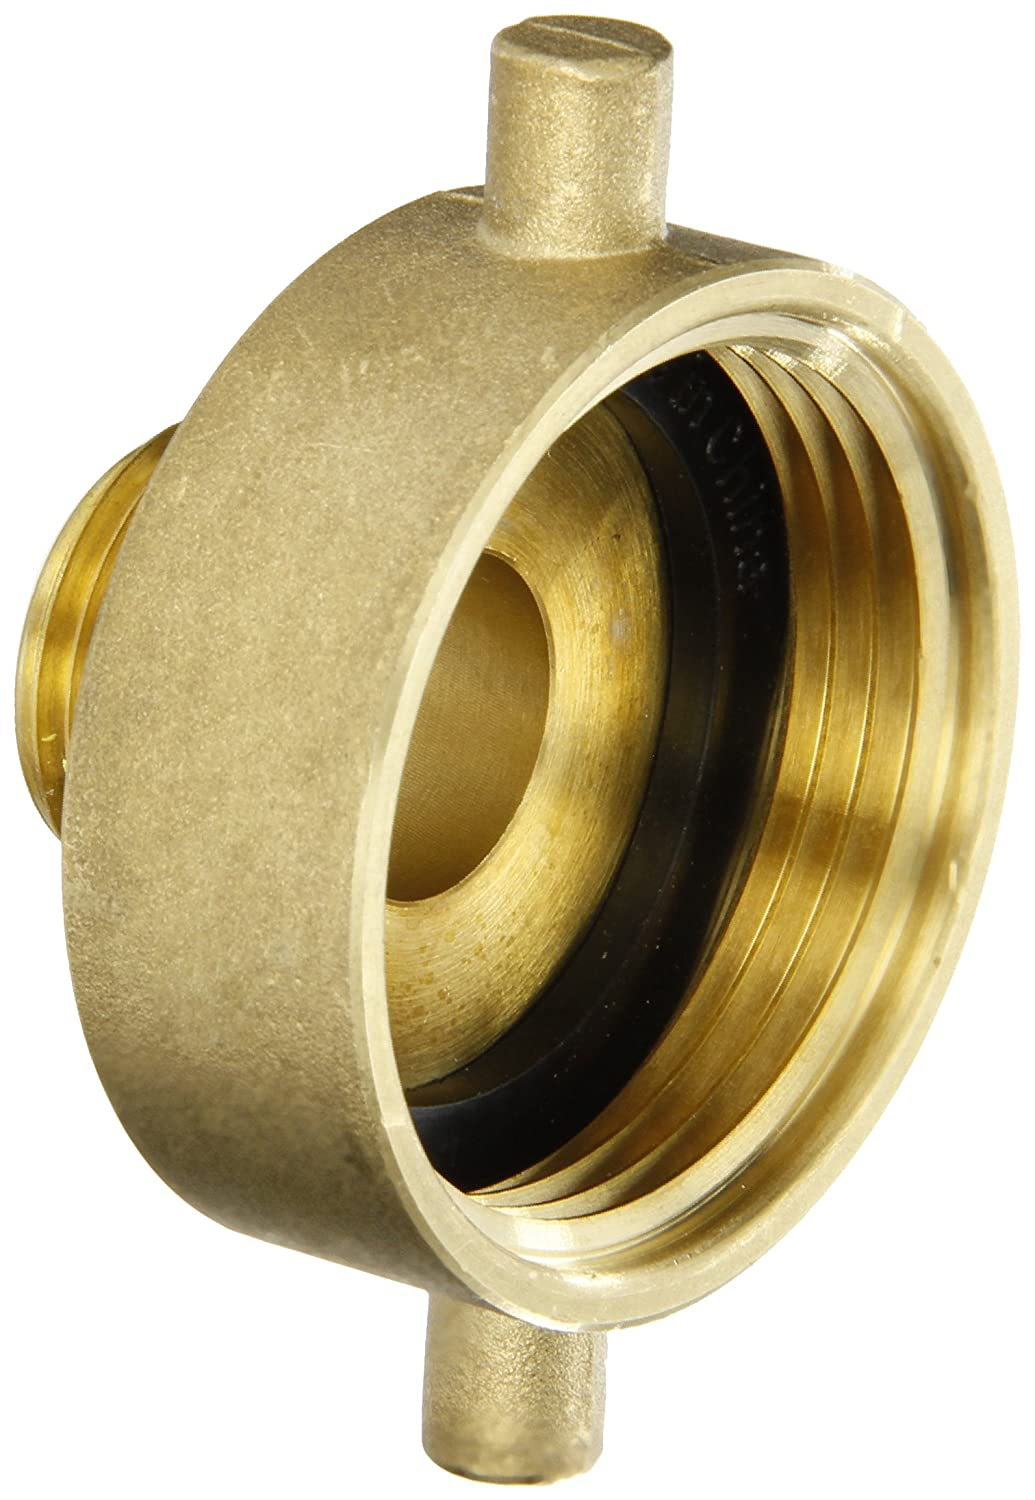 Dixon Valve HA1576 Brass Fire Equipment, Hydrant Adapter with Pin Lug, 1-1/2' NST (NH) Female x 3/4' GHT Male 1-1/2 NST (NH) Female x 3/4 GHT Male Dixon Valve & Coupling